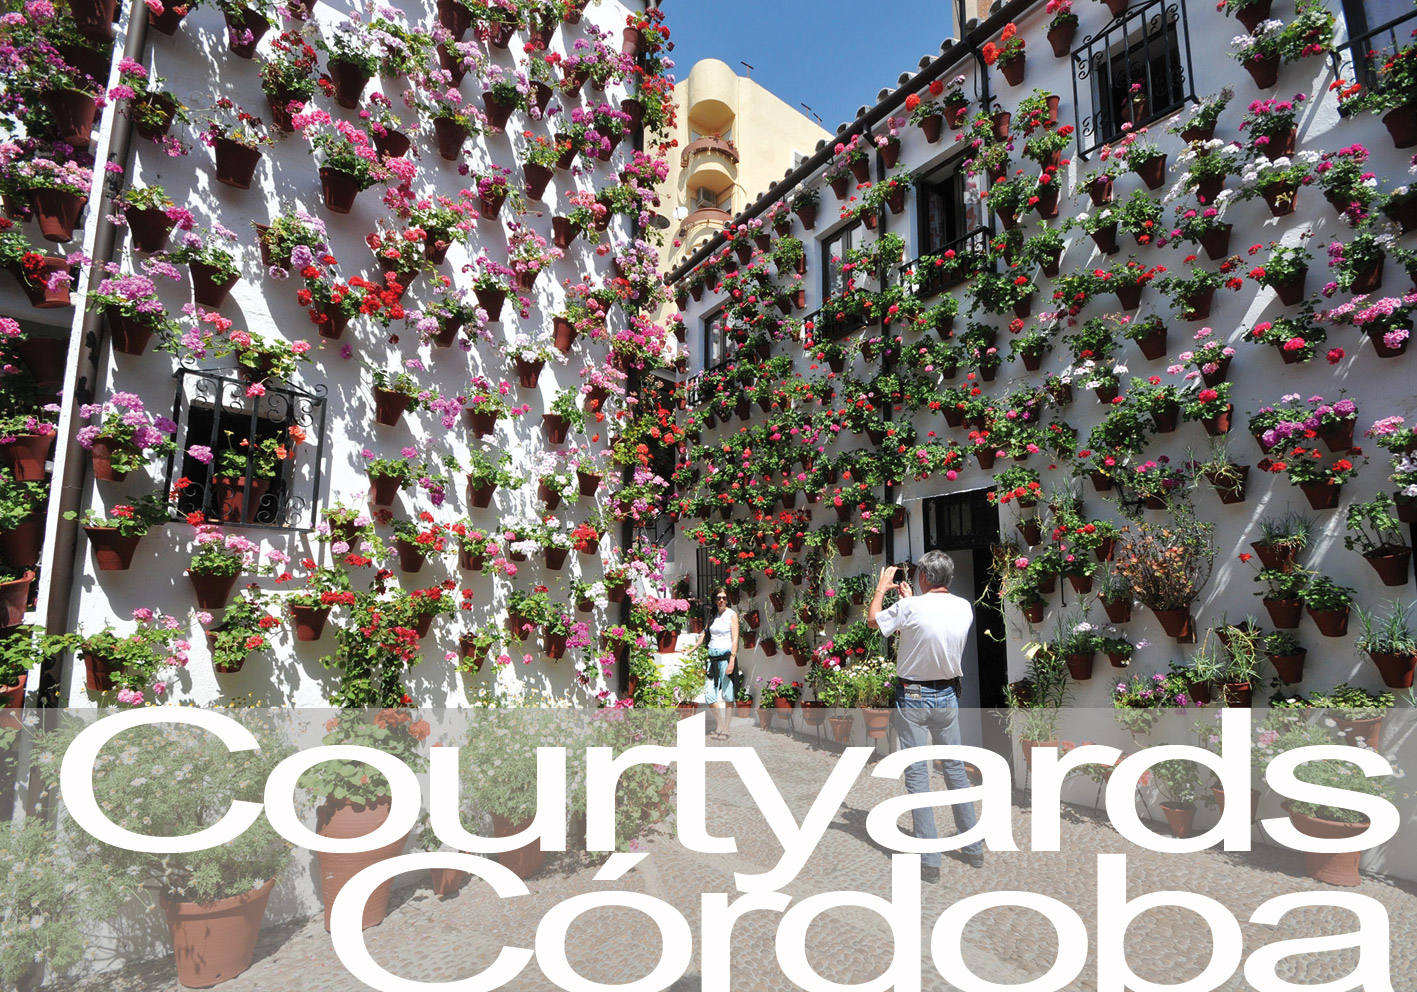 Visit the courtyards of Cordoba